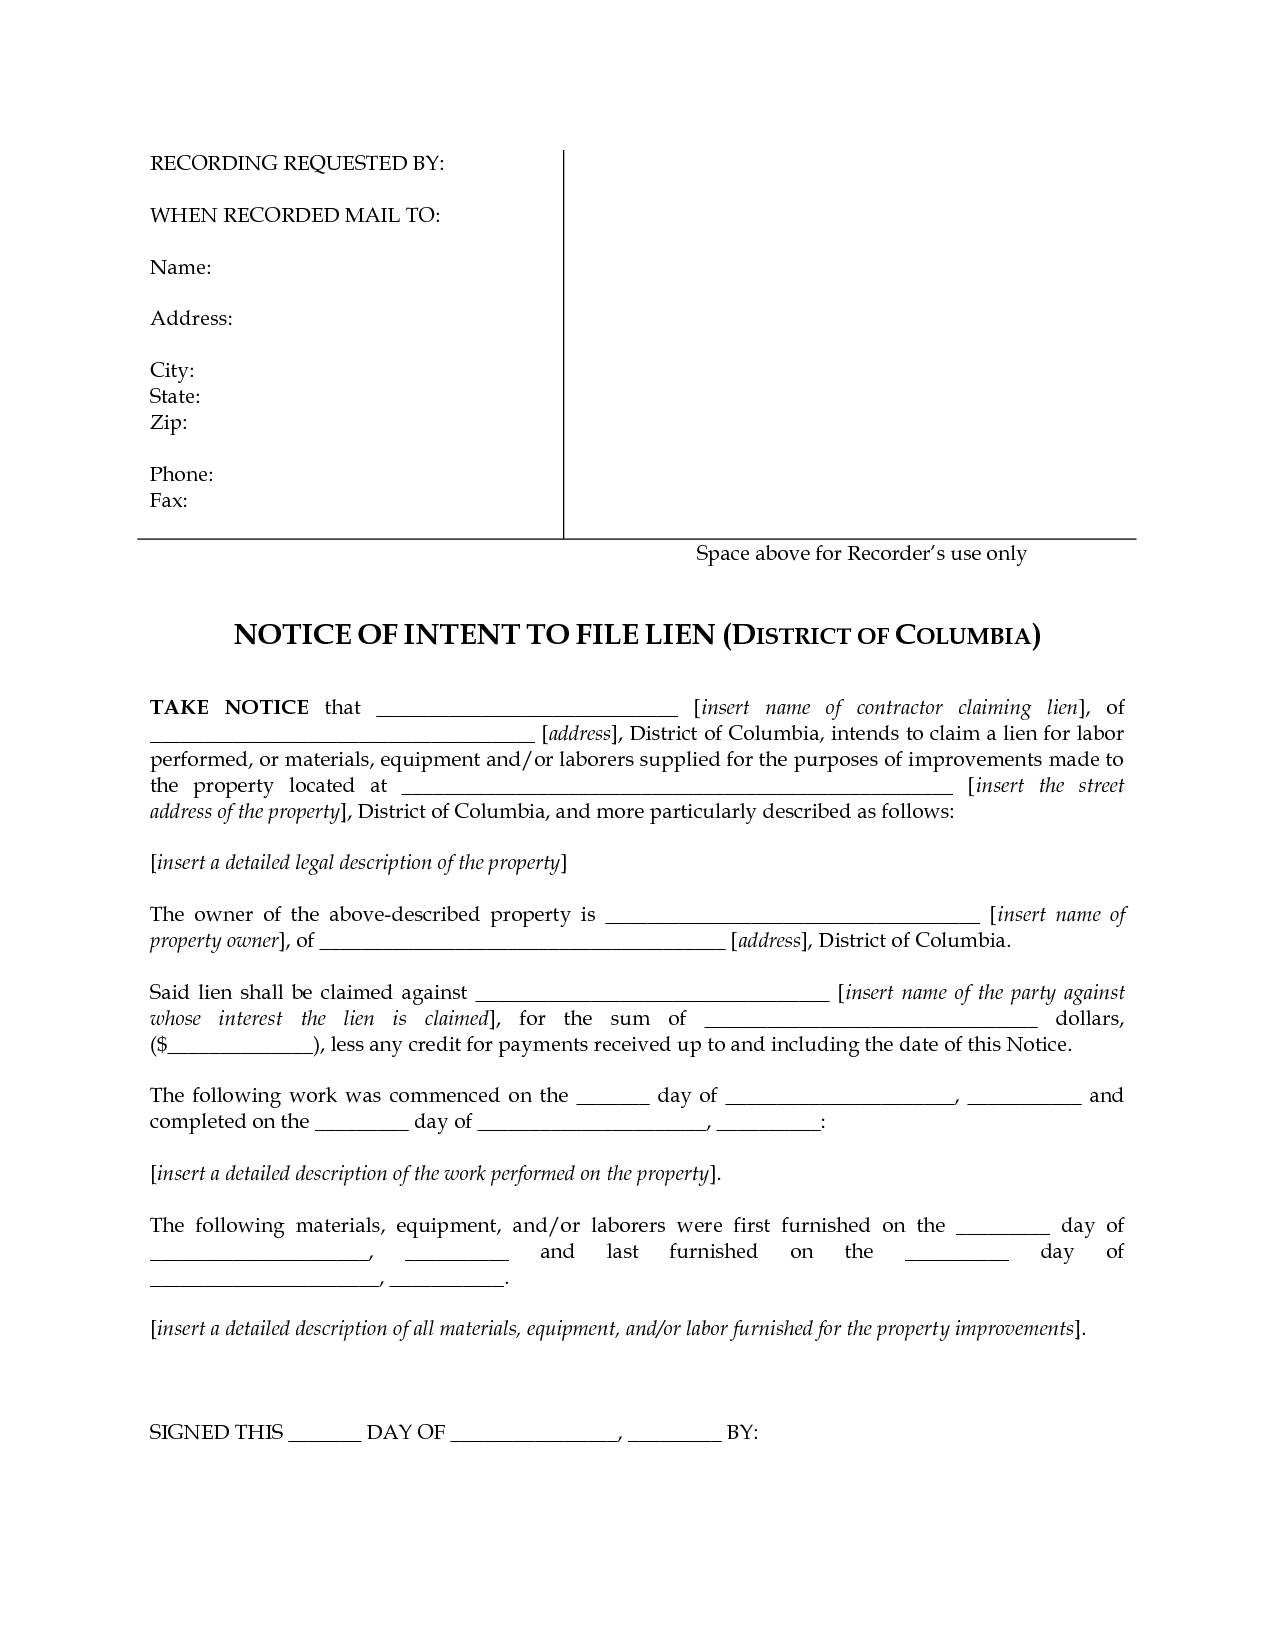 Letter Of Intent to File A Lien Template - Letter Intent to File Lien Inspirations Template In Texas